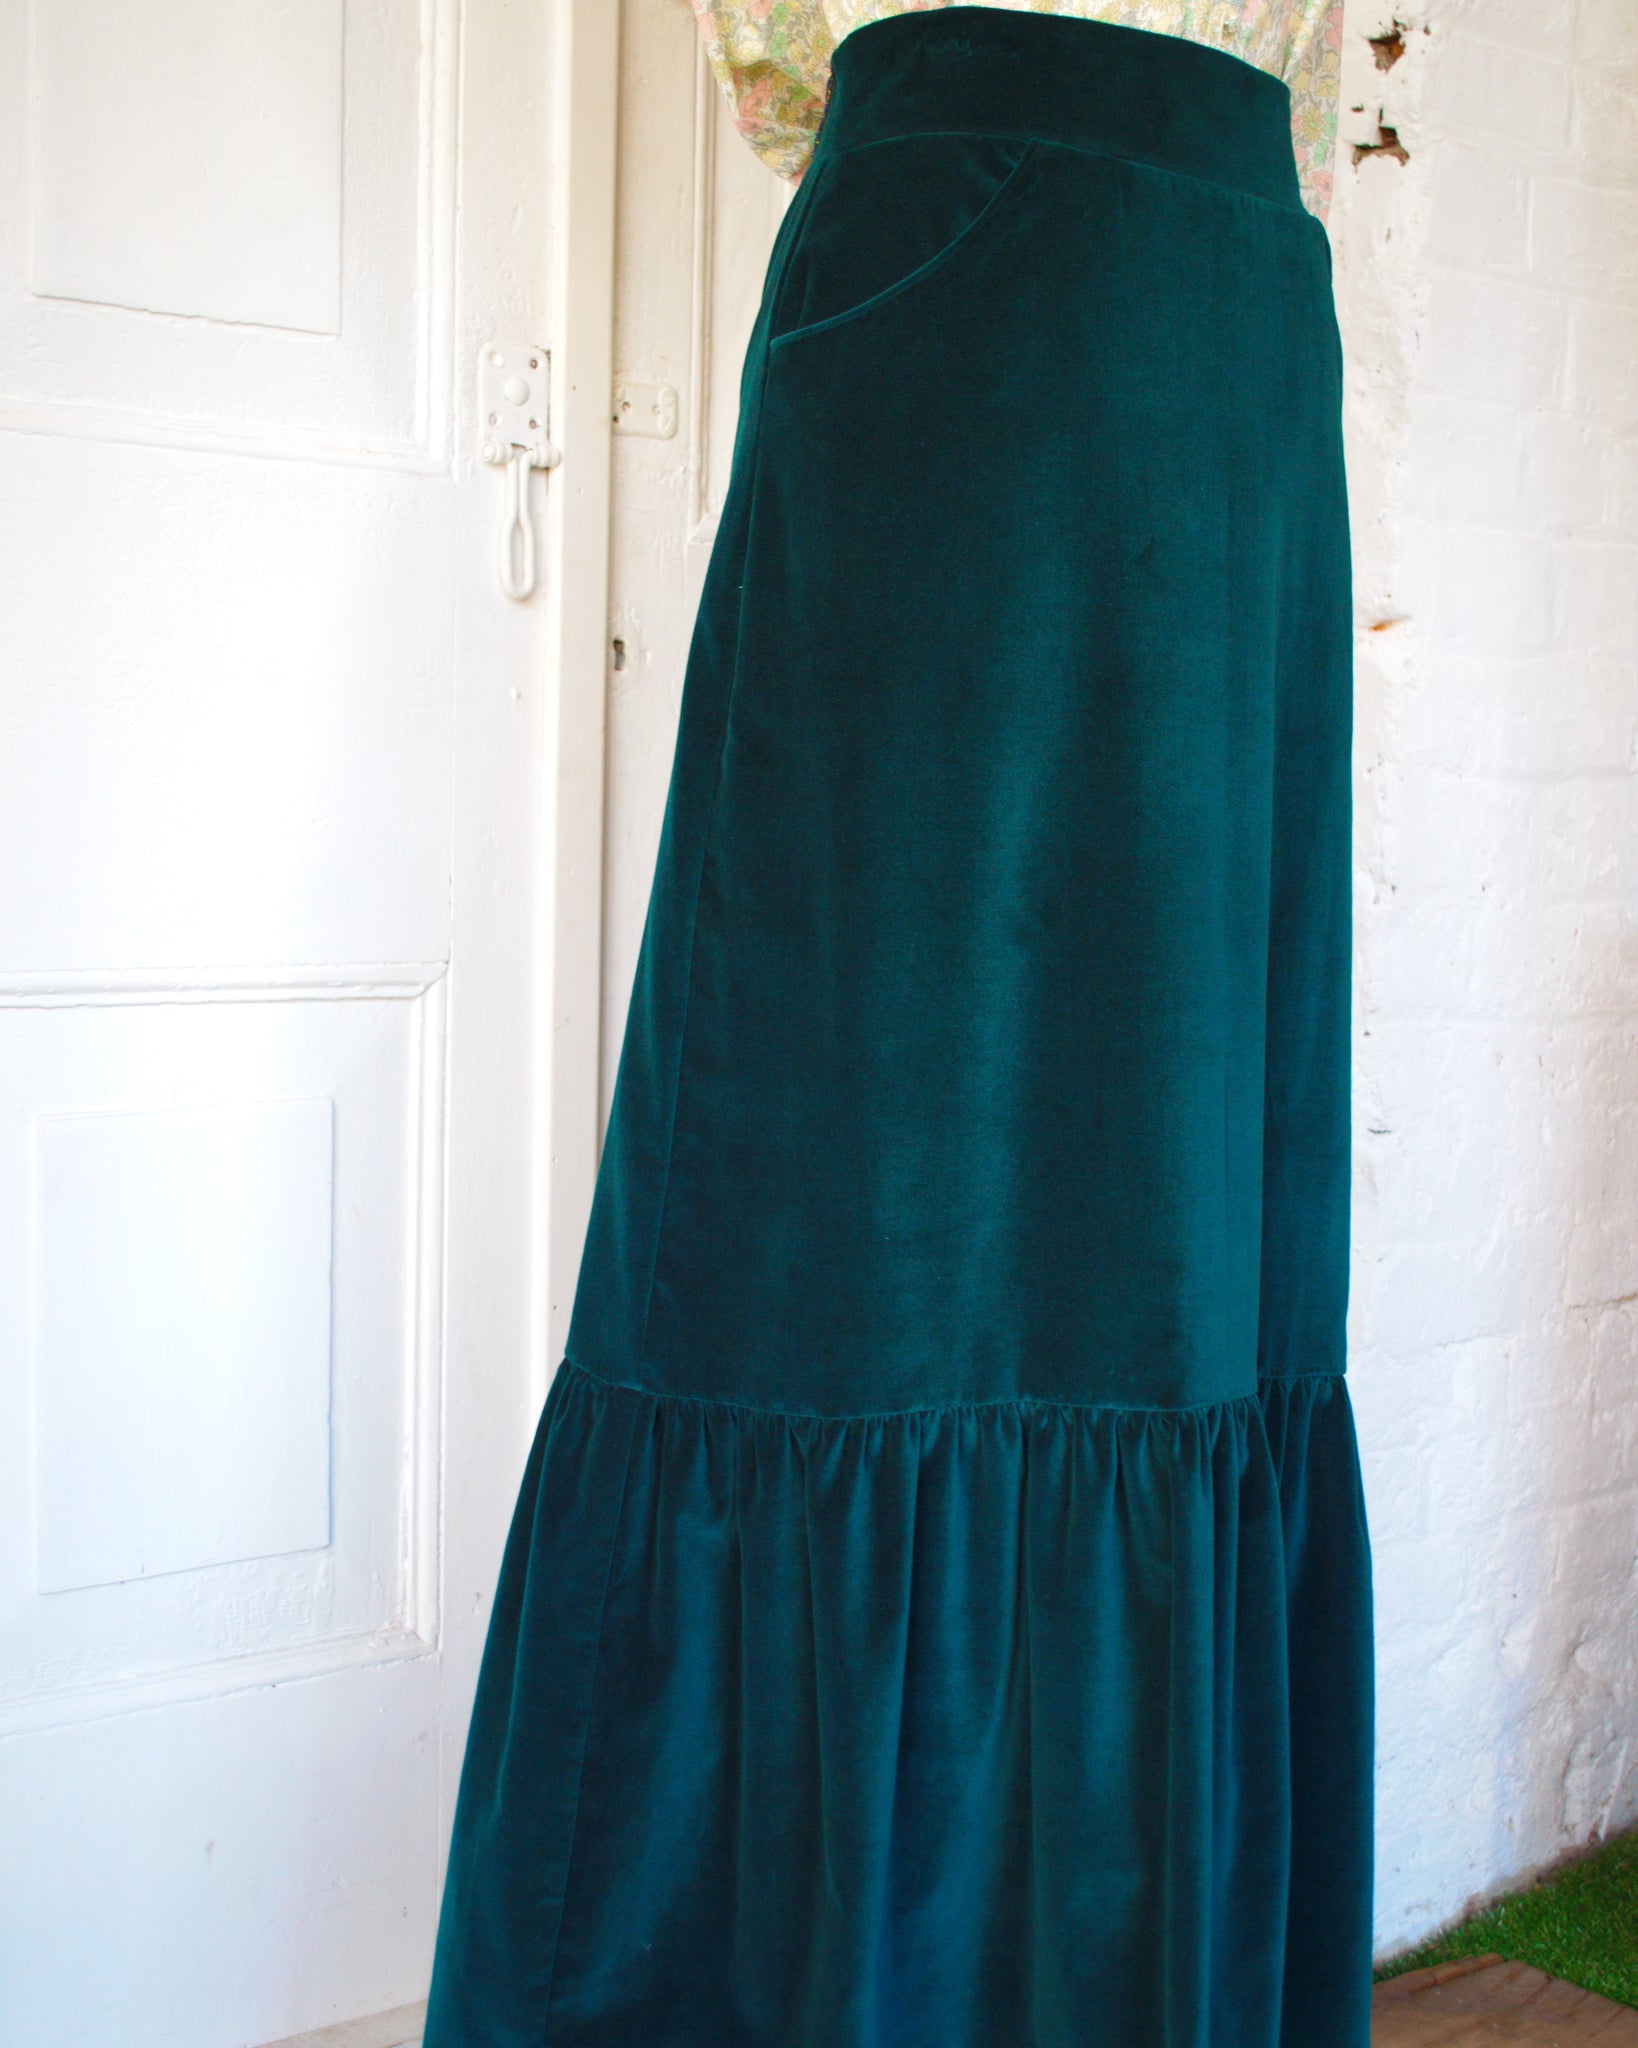 Hendrix Green Velvet Skirt in size 12